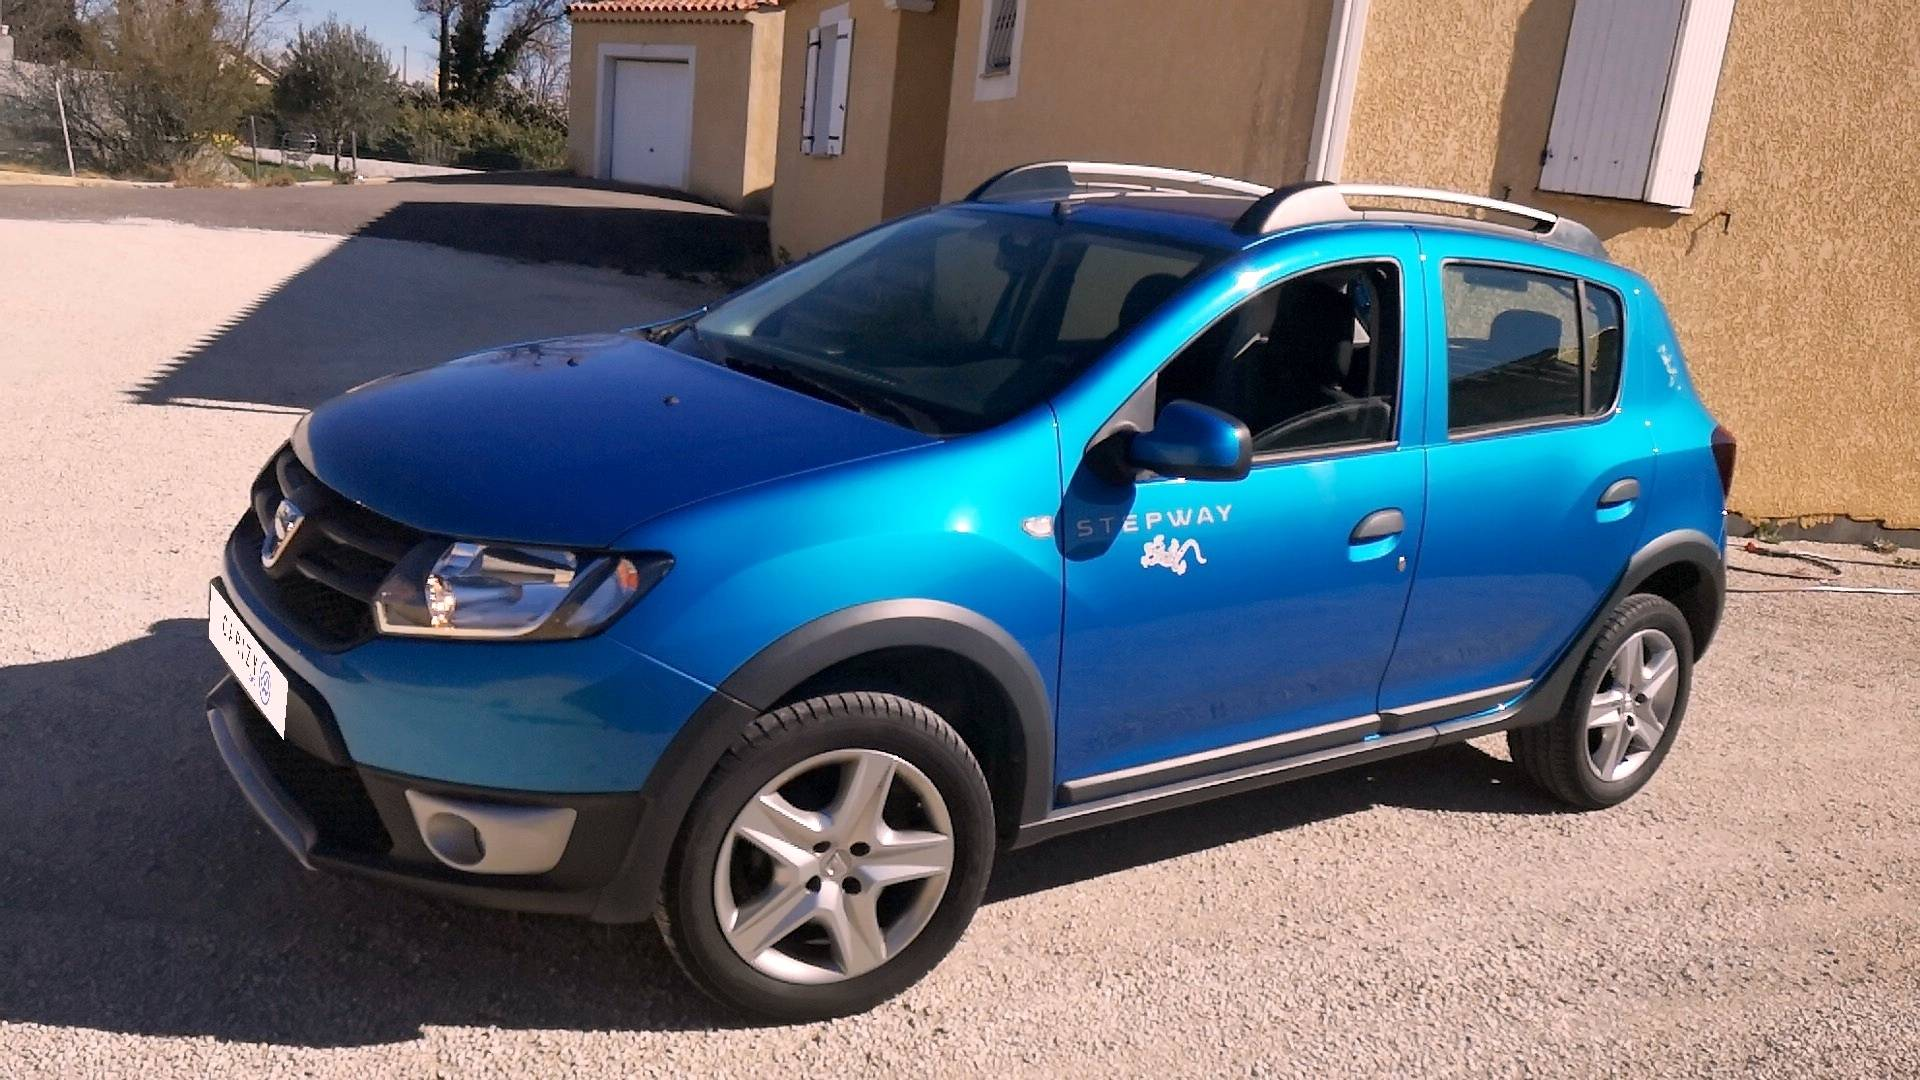 dacia sandero d 39 occasion stepway 0 9 tce 90 ambiance pierrelatte carizy. Black Bedroom Furniture Sets. Home Design Ideas